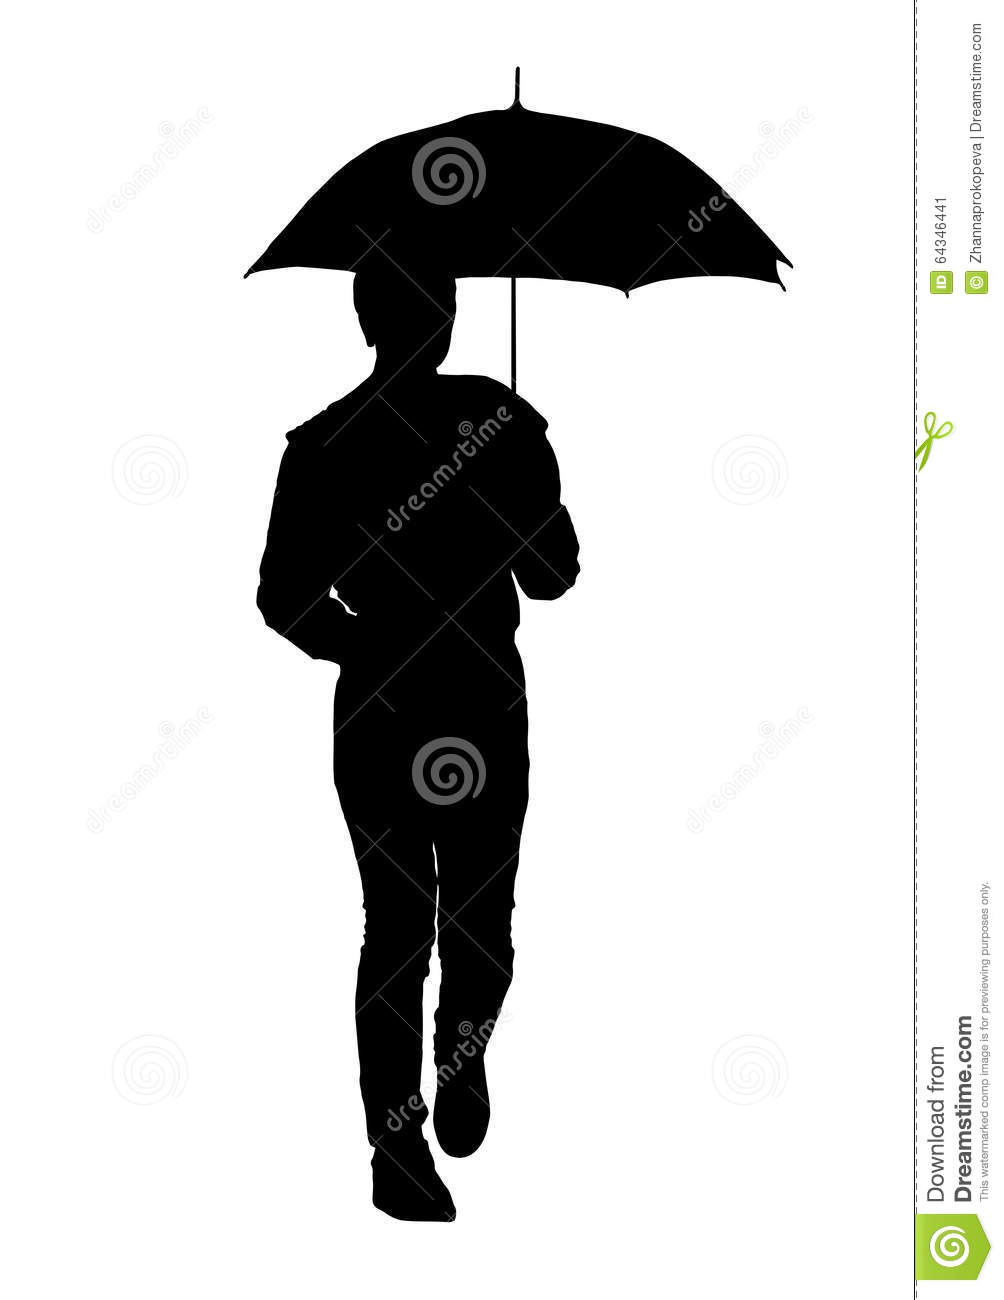 Silhouette Of A Woman With An Umbrella Stock Illustration ...  Silhouette Of A...